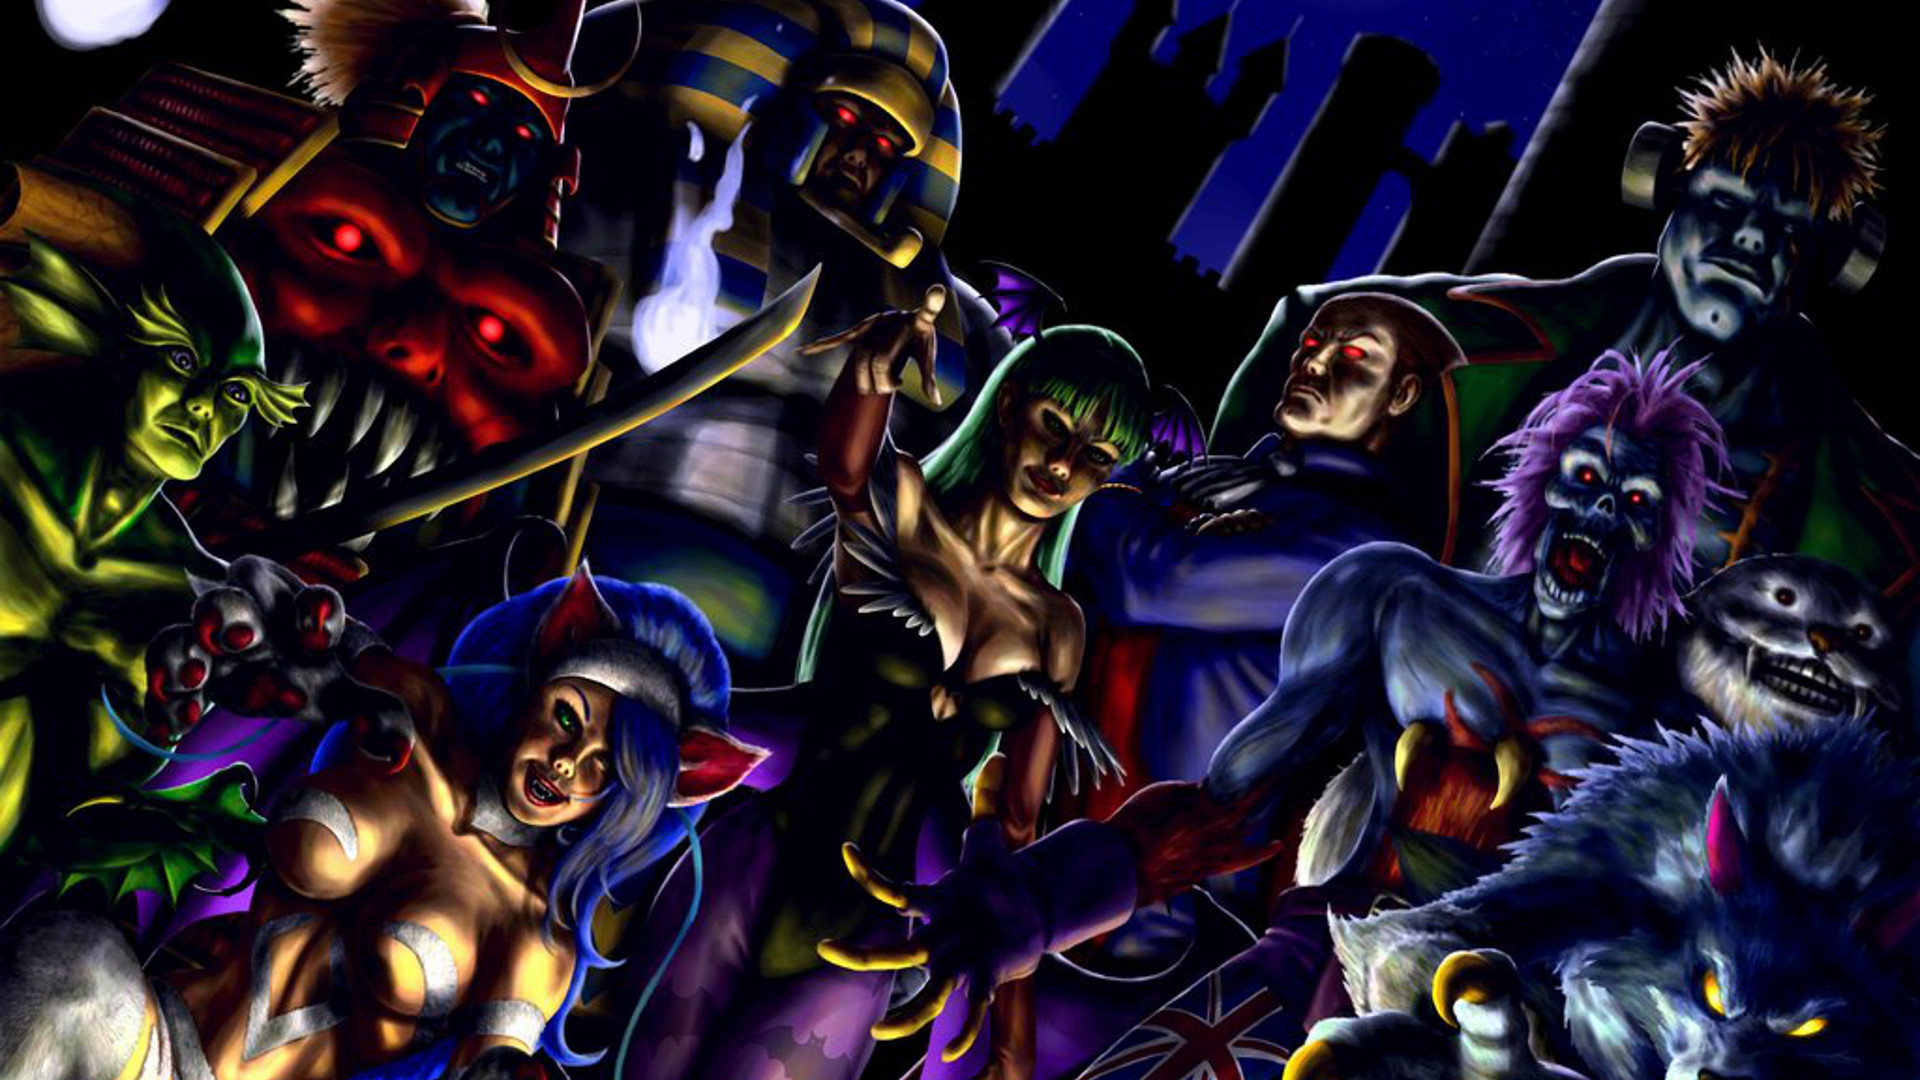 Darkstalkers Full HD Wallpaper and Background Image ...